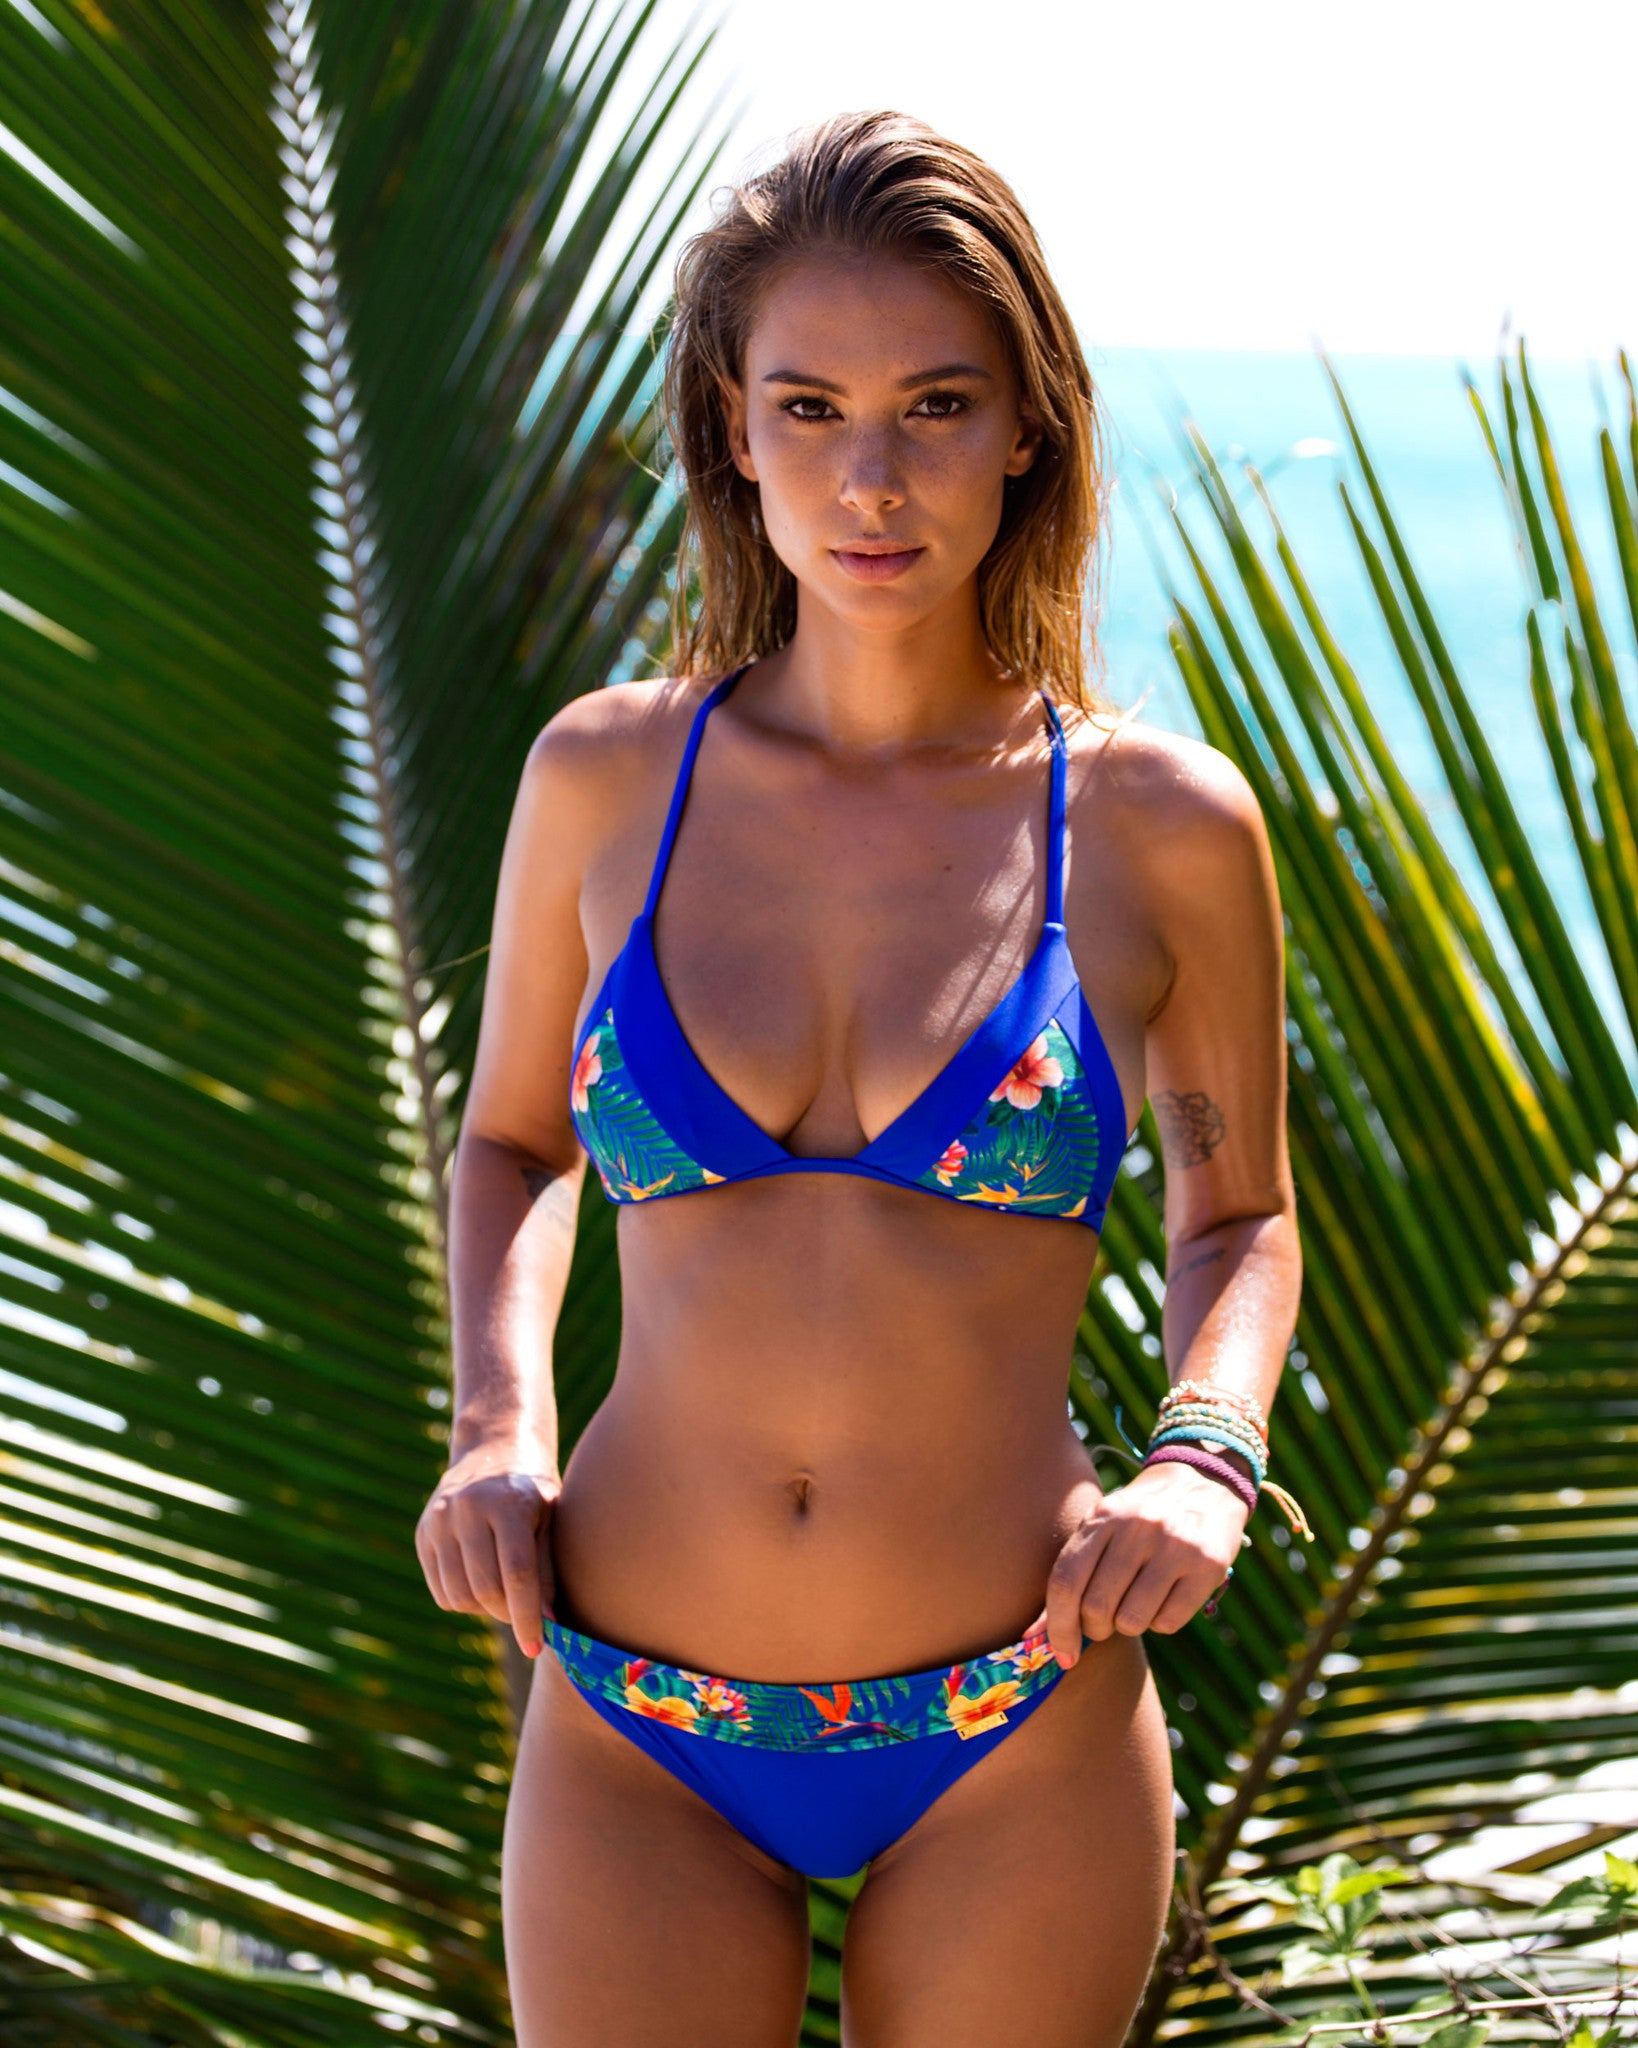 Nexpa Top - Birds of Paradise - cheeky cut brazilian surf bikinis Cenote Swimwear that stays on in the surf